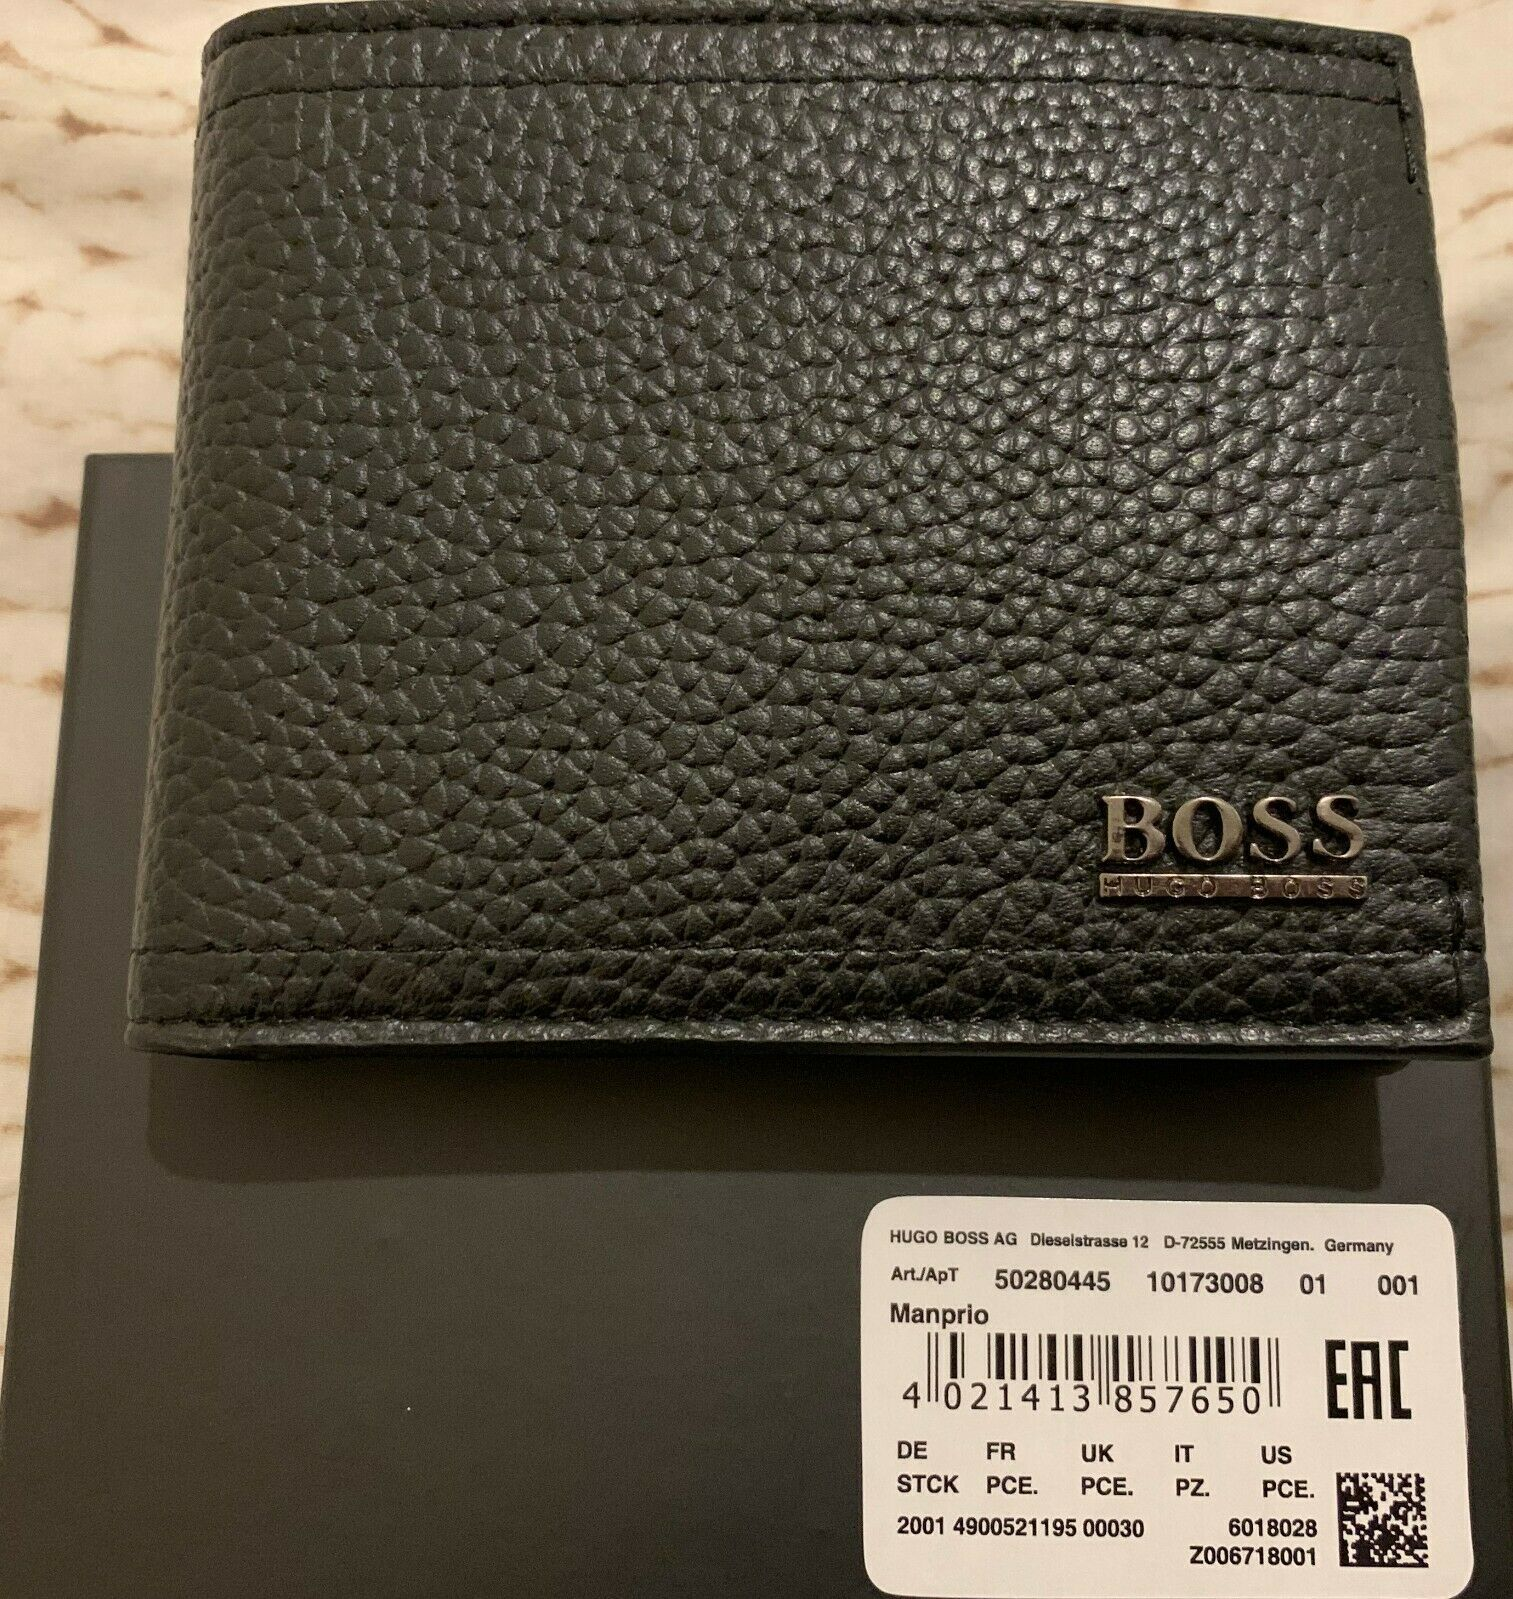 Hugo BOSS Men/'s Black Leather Wallet /'Manprio/' Bi-fold Style 50280445